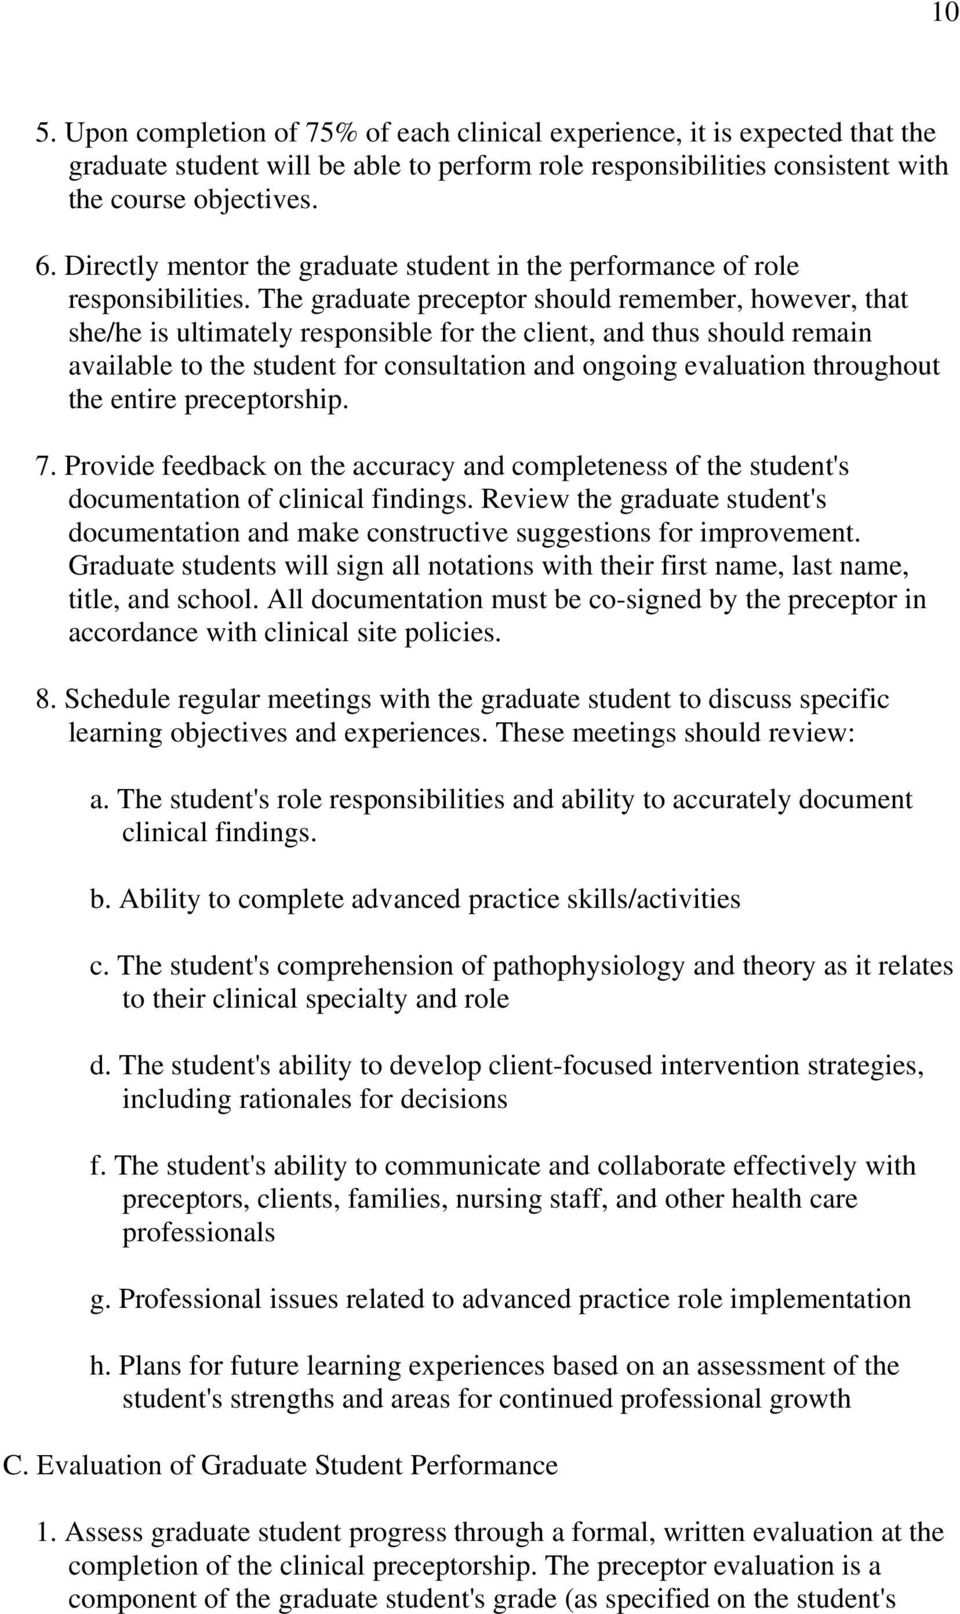 The graduate preceptor should remember, however, that she/he is ultimately responsible for the client, and thus should remain available to the student for consultation and ongoing evaluation